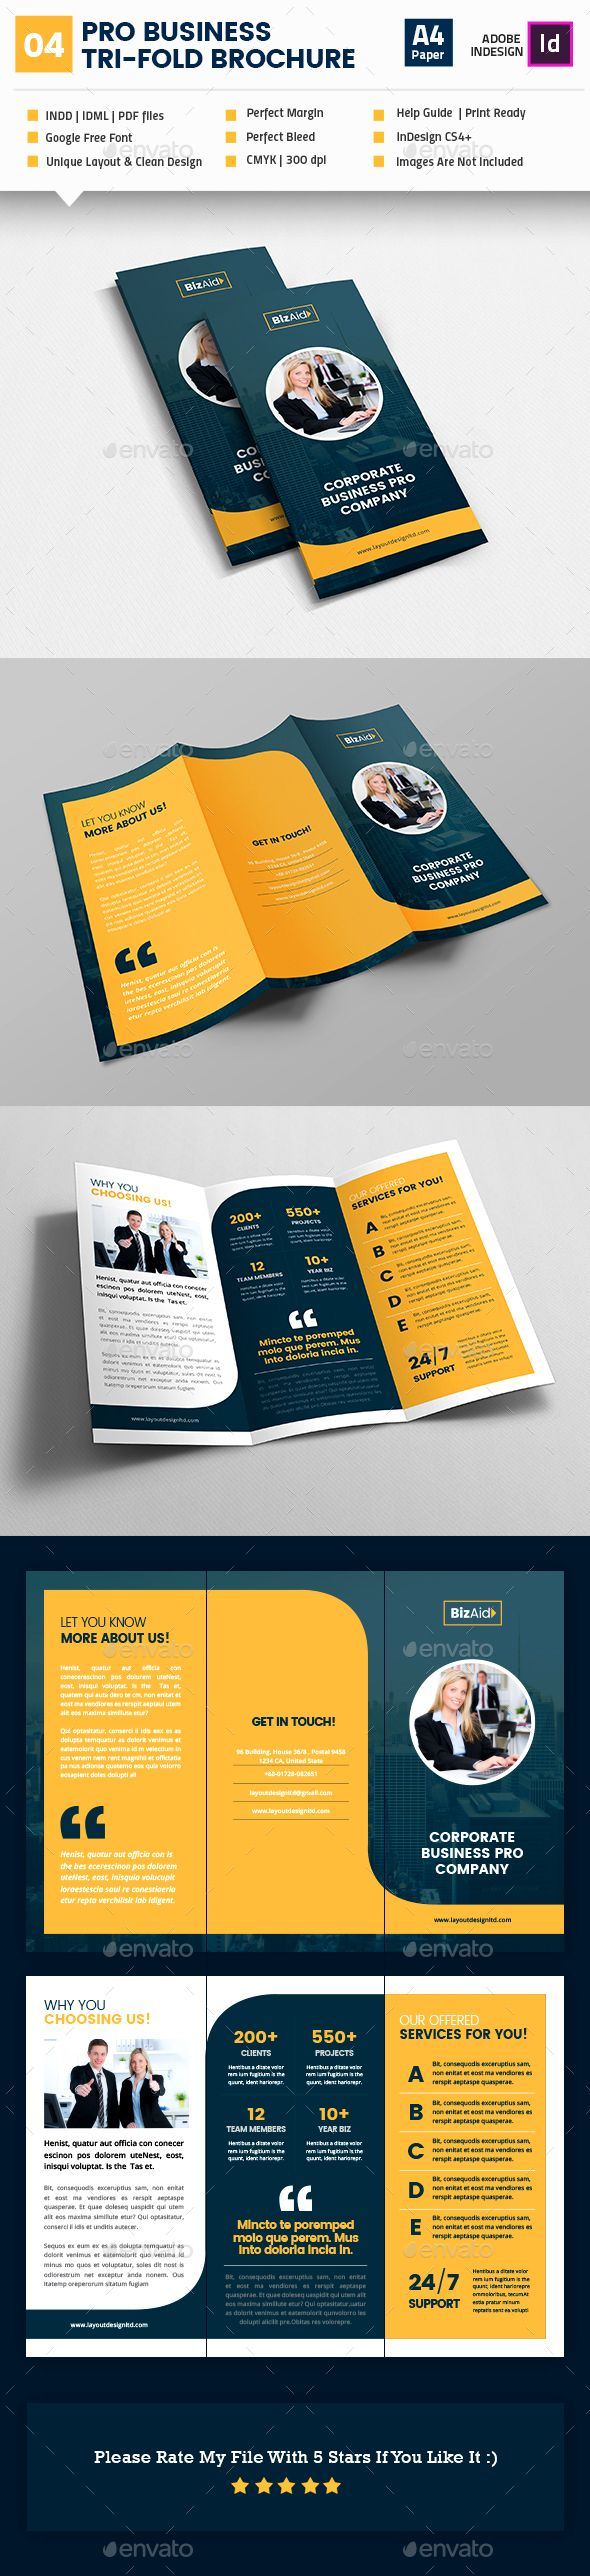 Pro Business Tri-Fold Brochure Template InDesign INDD